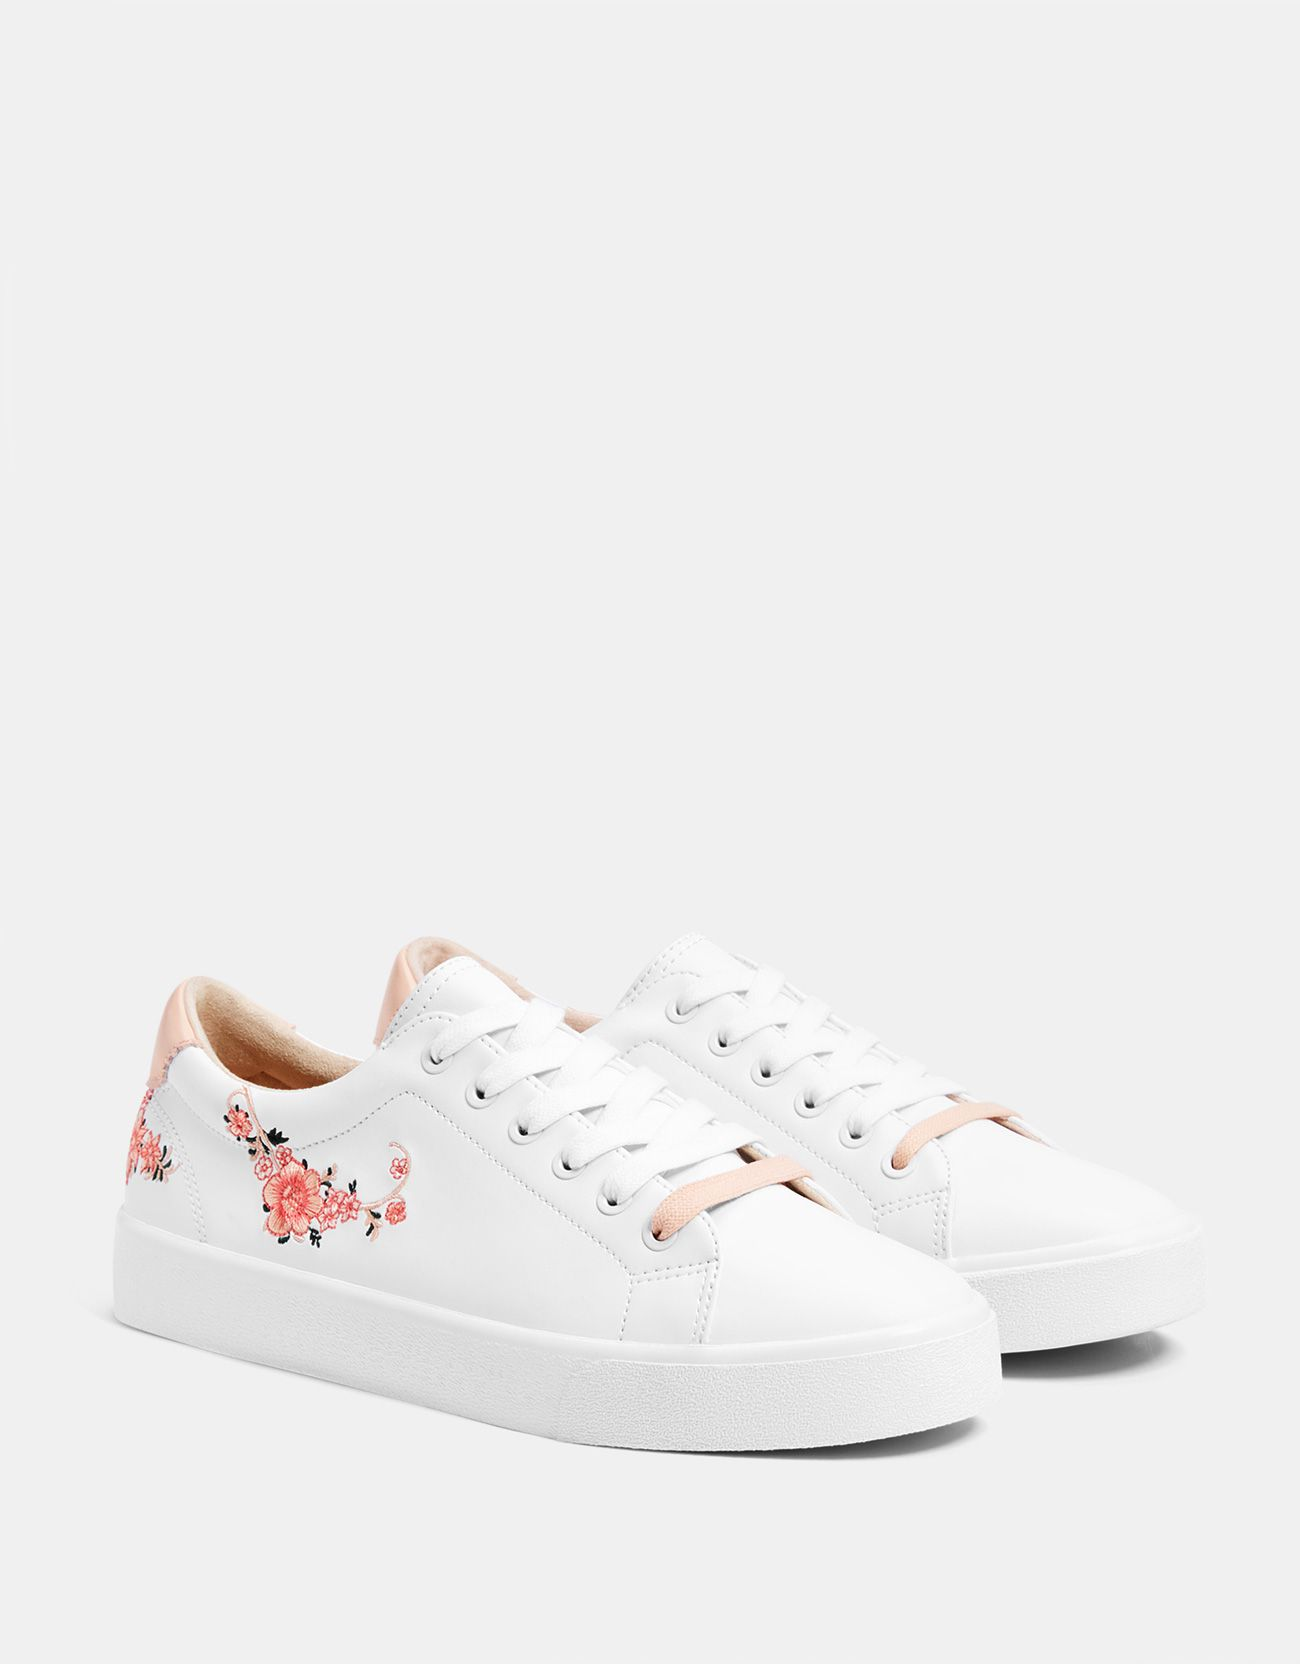 8768985bc Embroidered white trainers em 2019   Shoes   Shoes, Sneakers e Shoes ...